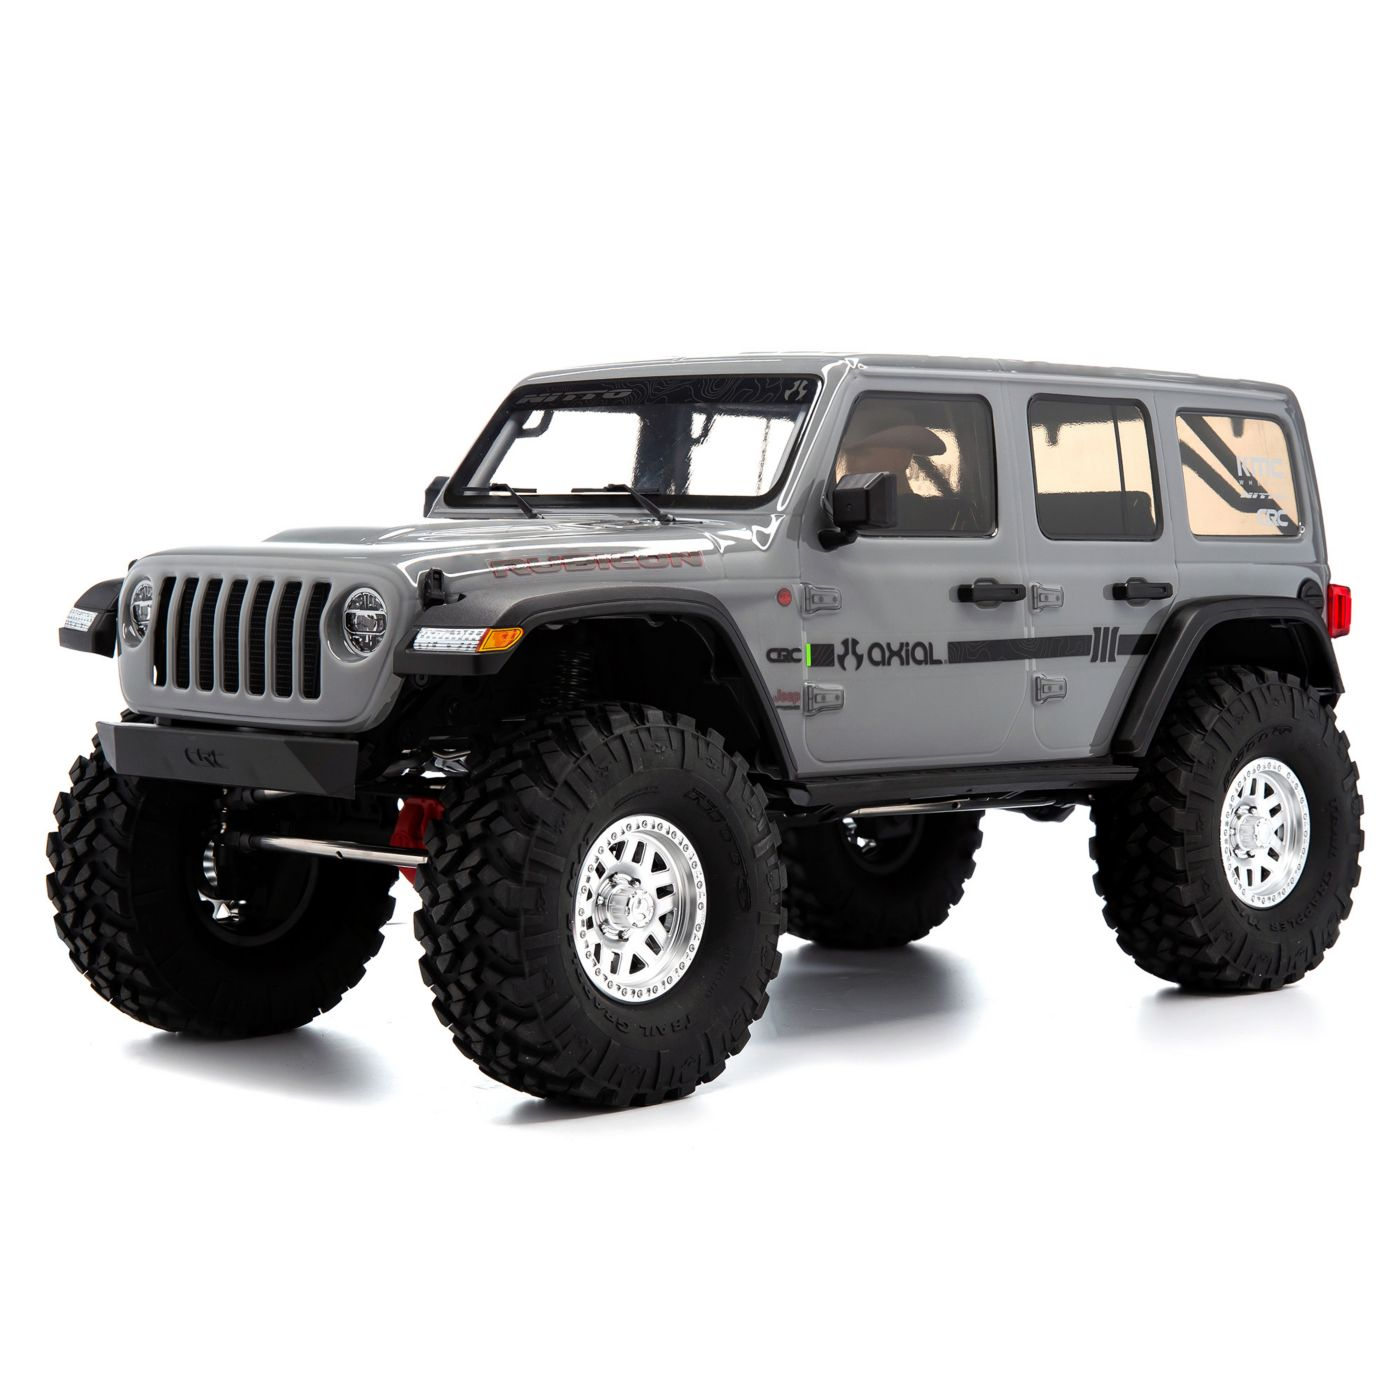 Axial Racing 1/10 SCX10 III Jeep JLU Wrangler with Portals RTR, Gray